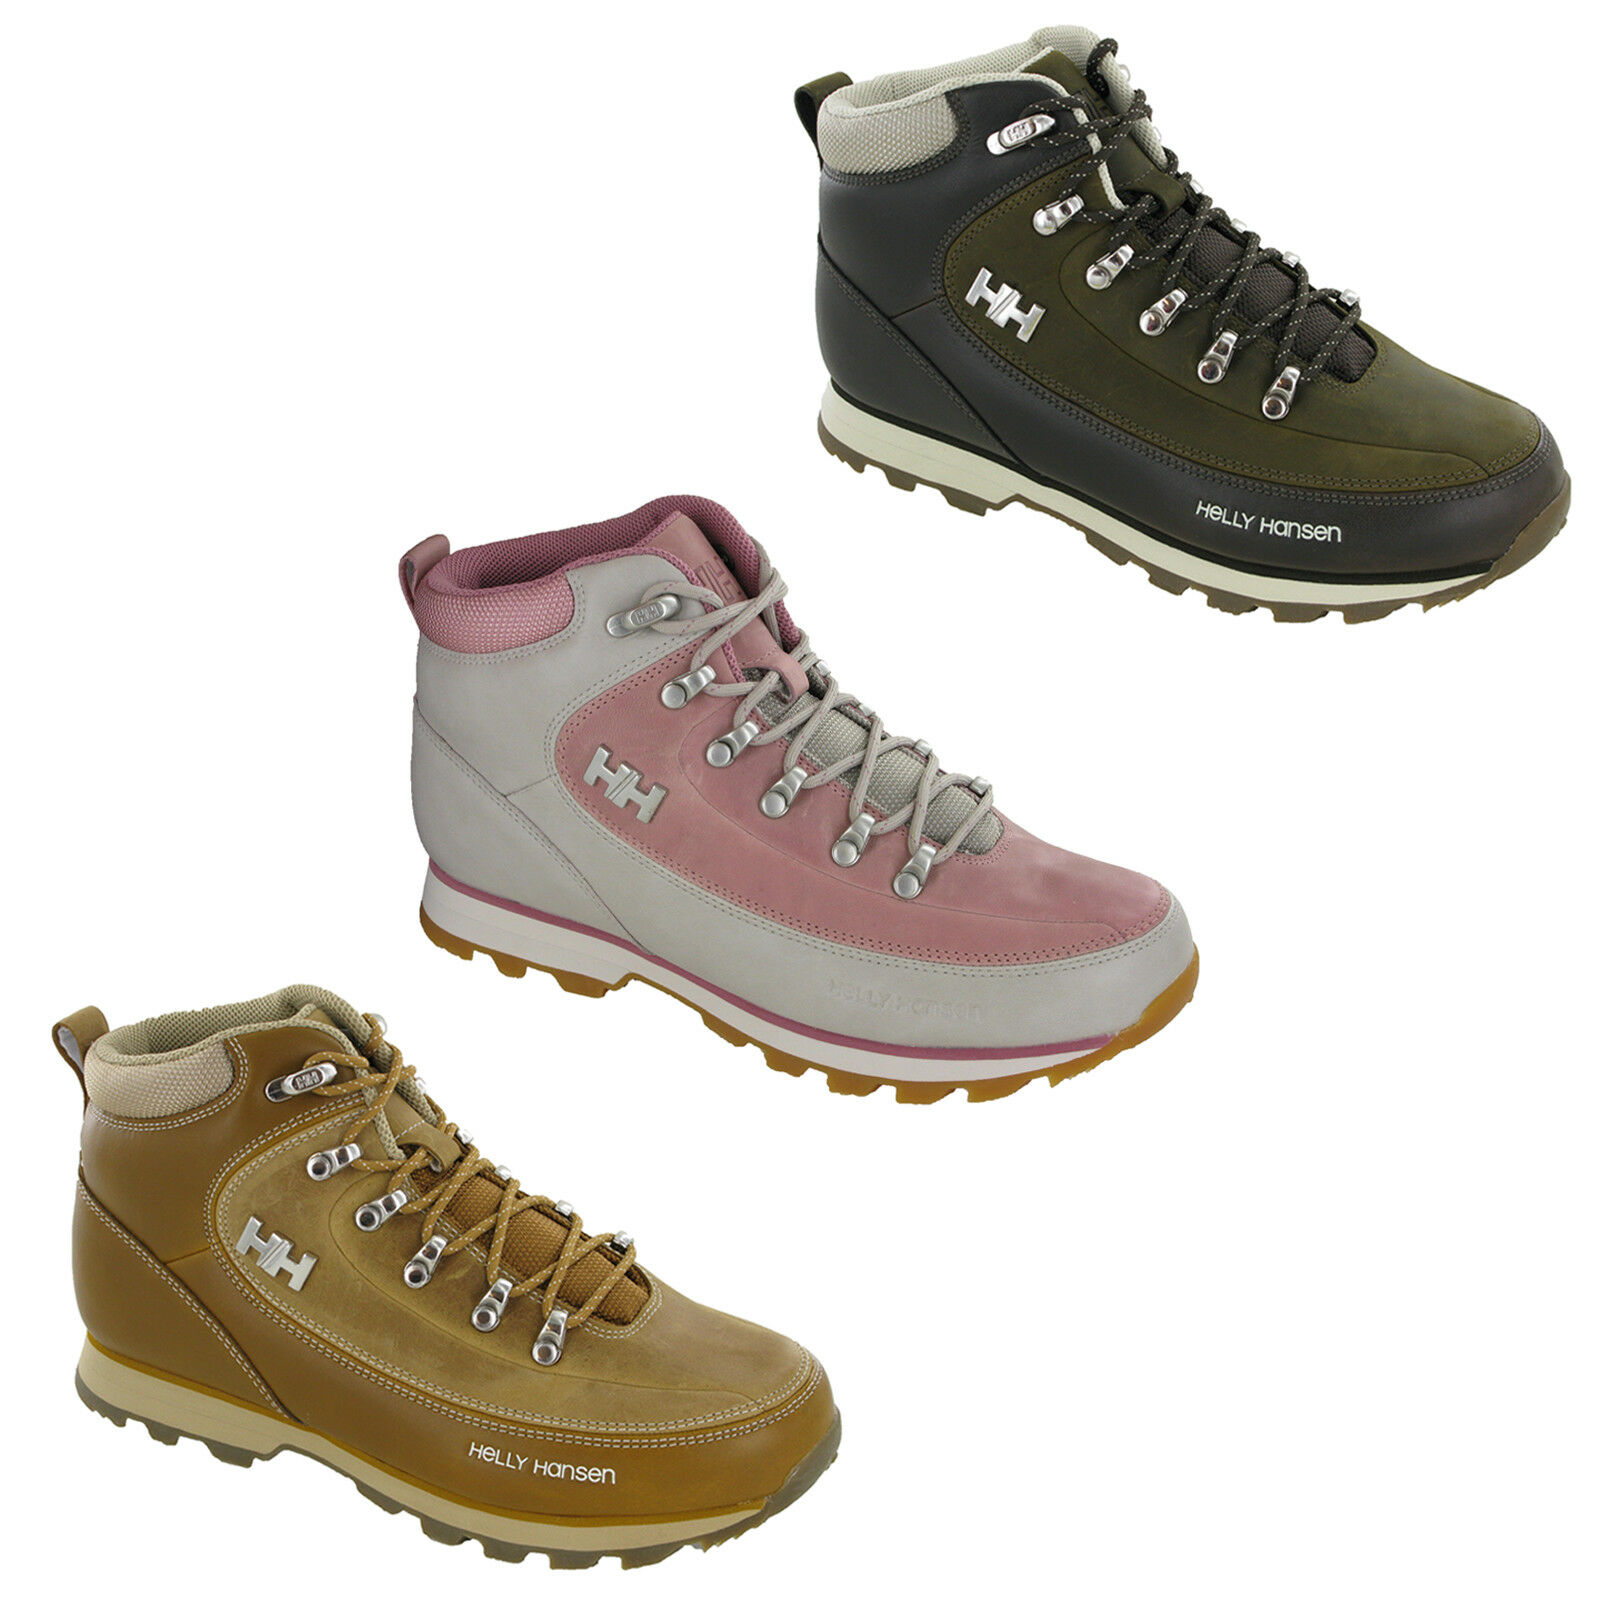 Helly Hansen  Herren Stiefel Forester Ankle Winter Water Repellant Walking Schuhes